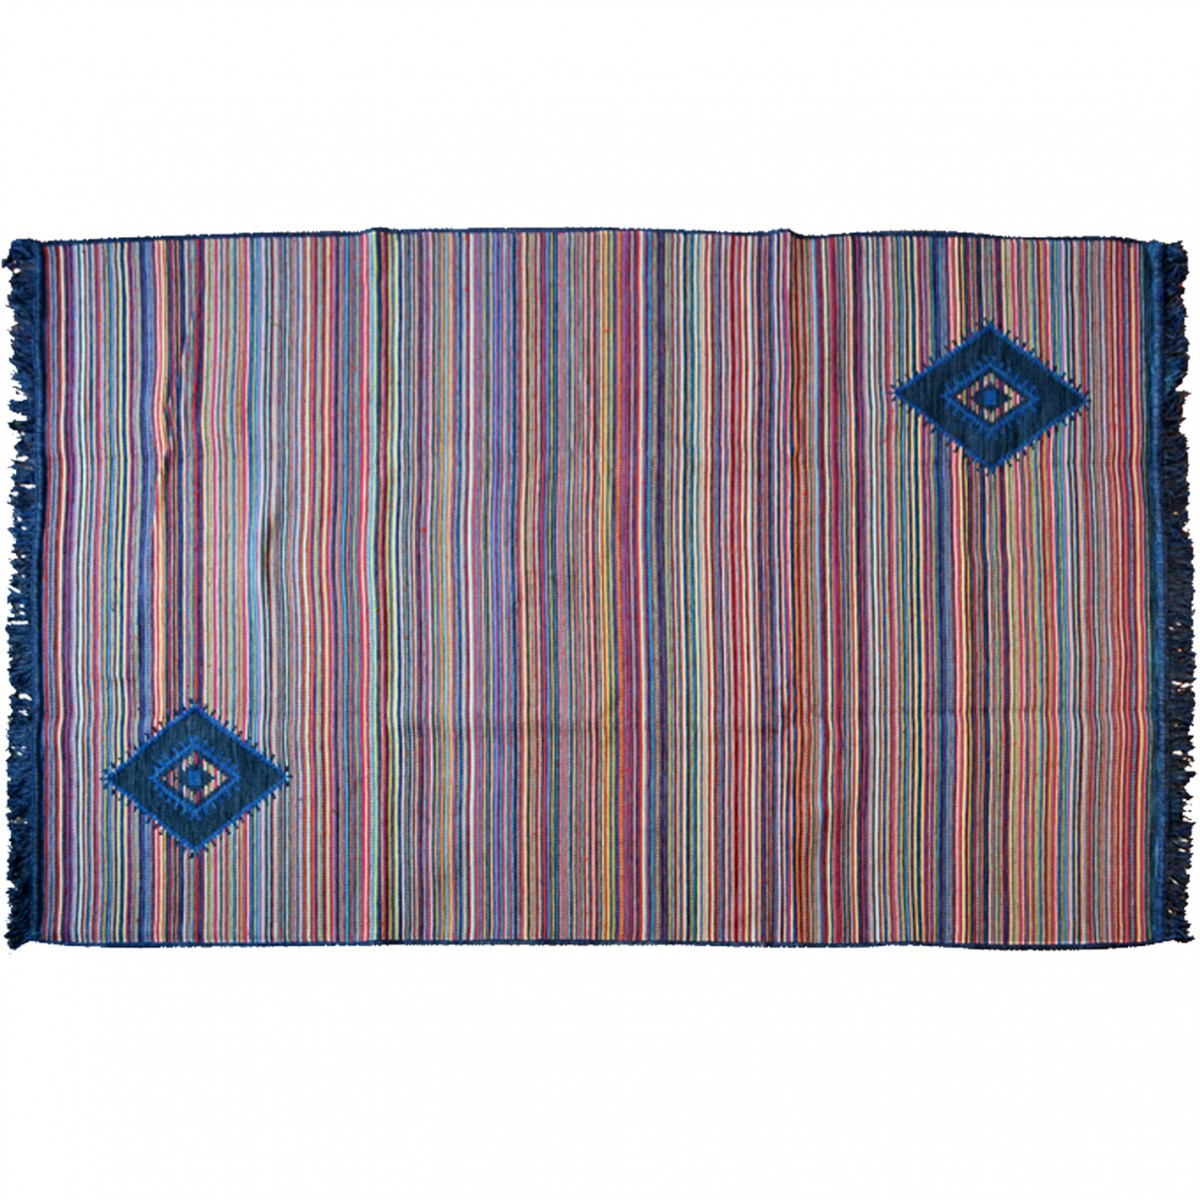 Bohemian Rug with Stripes Blue and Multi